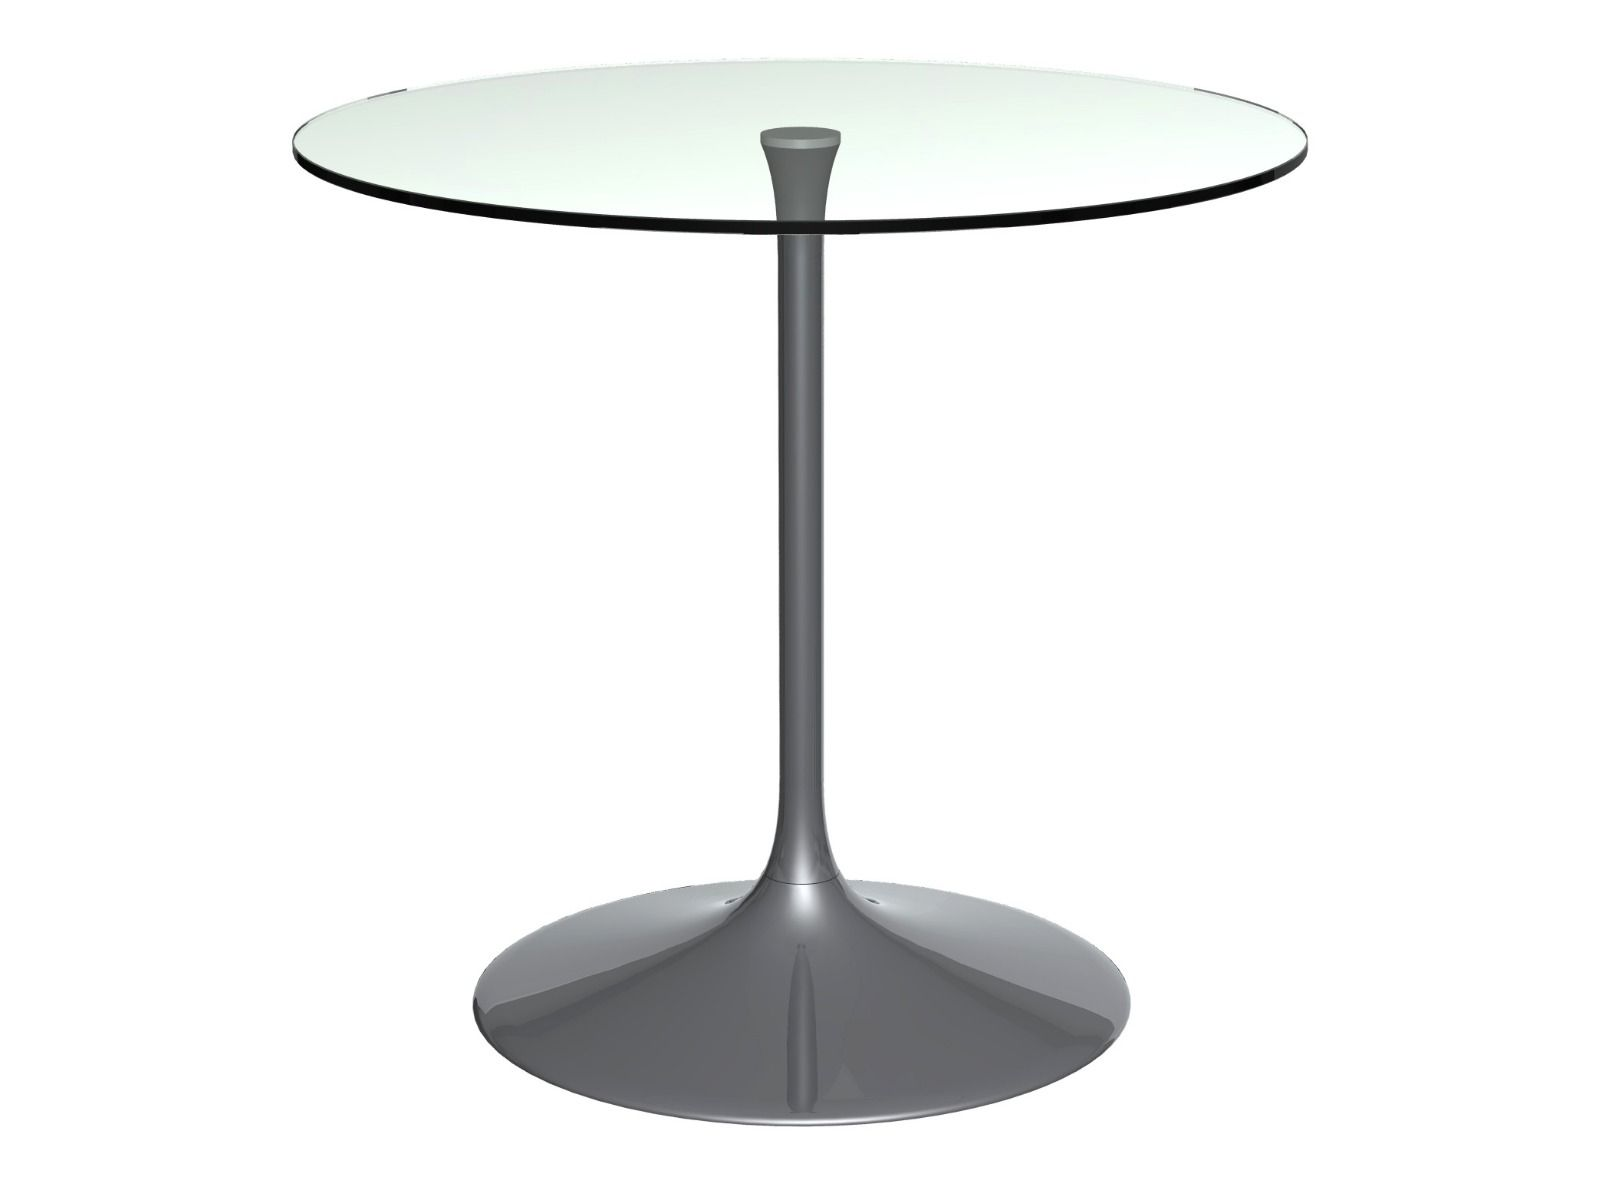 circular dining table tables collection from gillmore rh gillmorespace com acrylic swan dining table ercol swan dining table and chairs